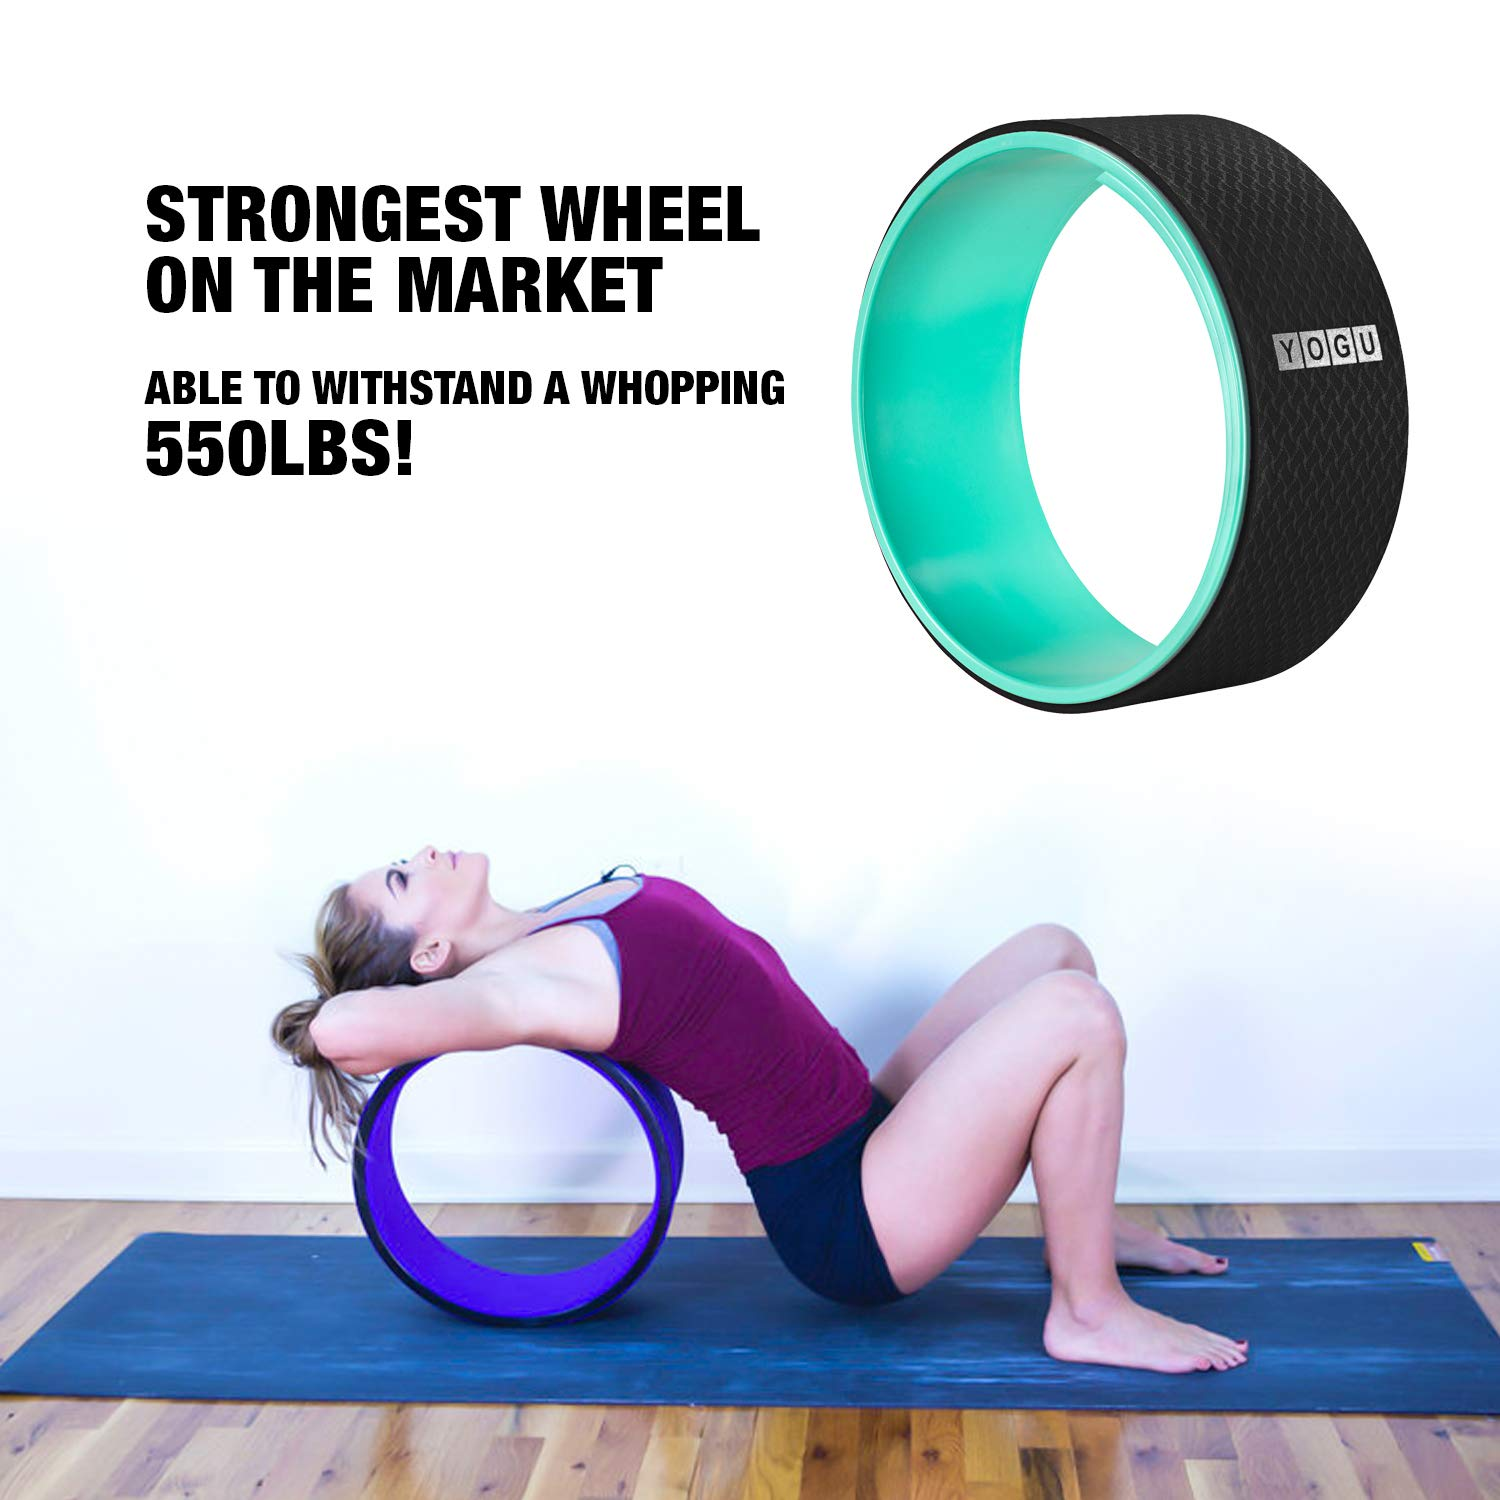 Amazon.com : YOGU Yoga Wheel for Stretching, Improve Yoga ...